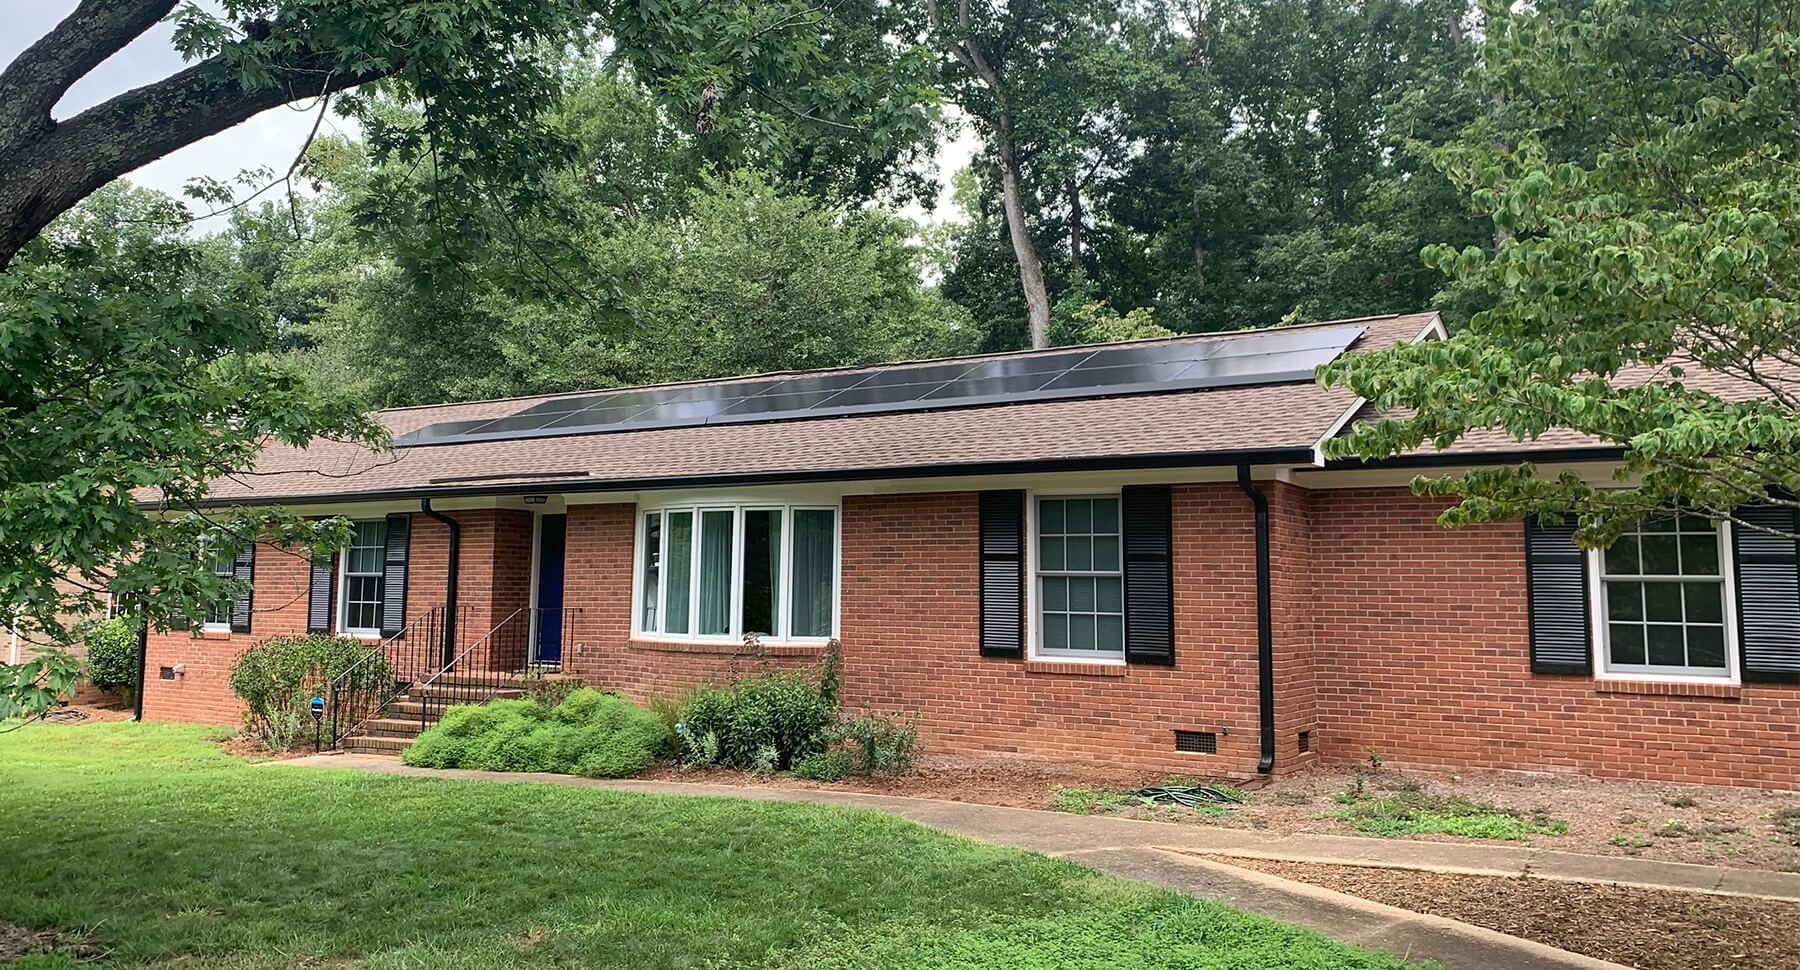 Brick home with black solar system on the front roof